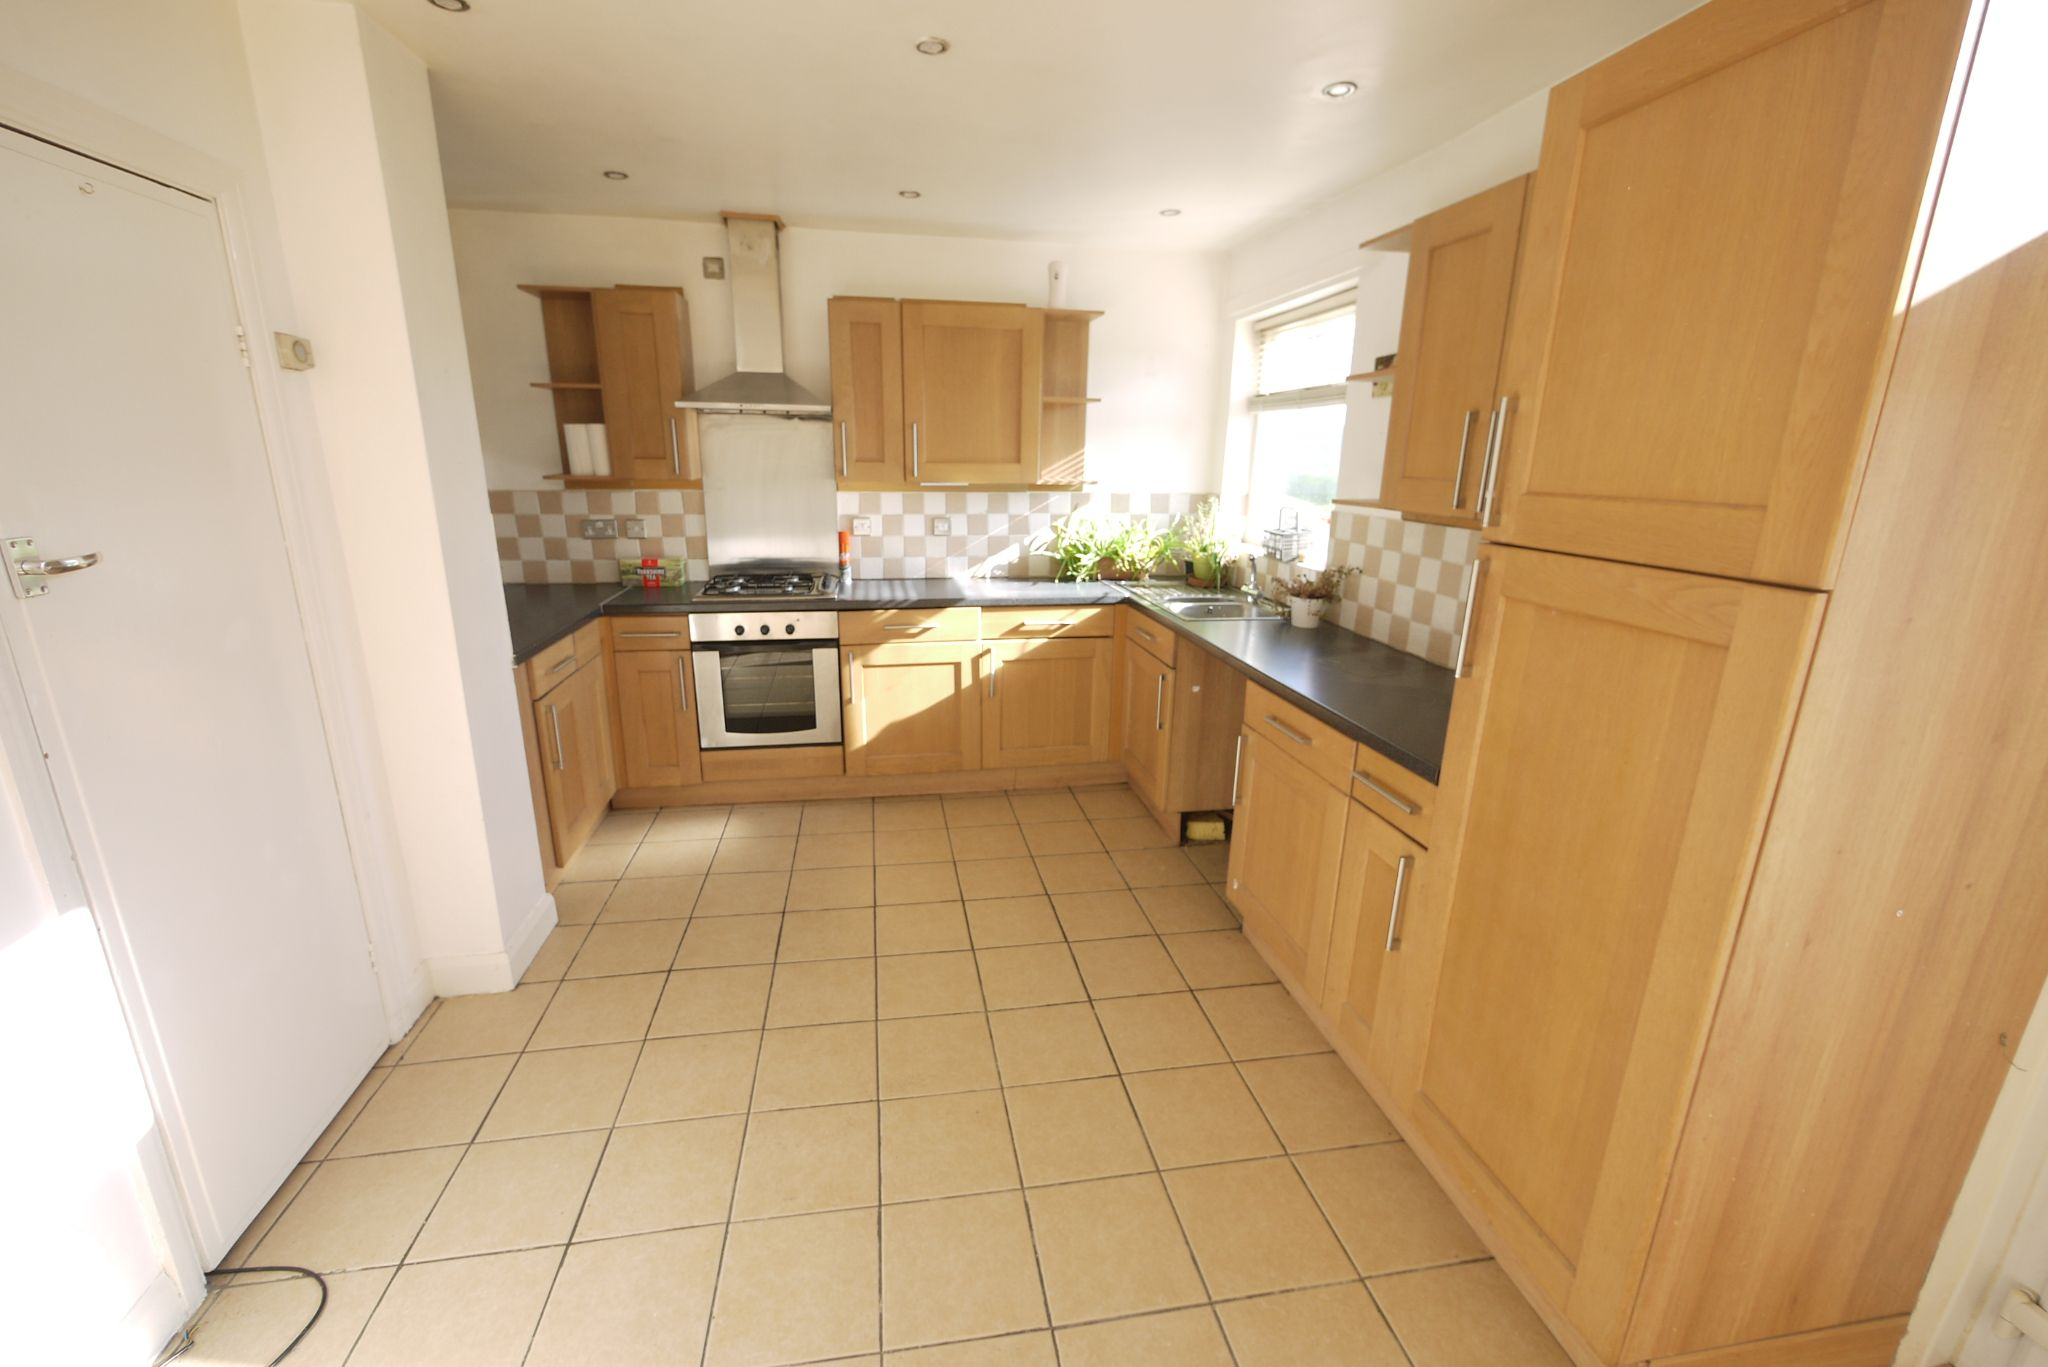 3 bedroom semi-detached house SSTC in Brighouse - Photograph 3.